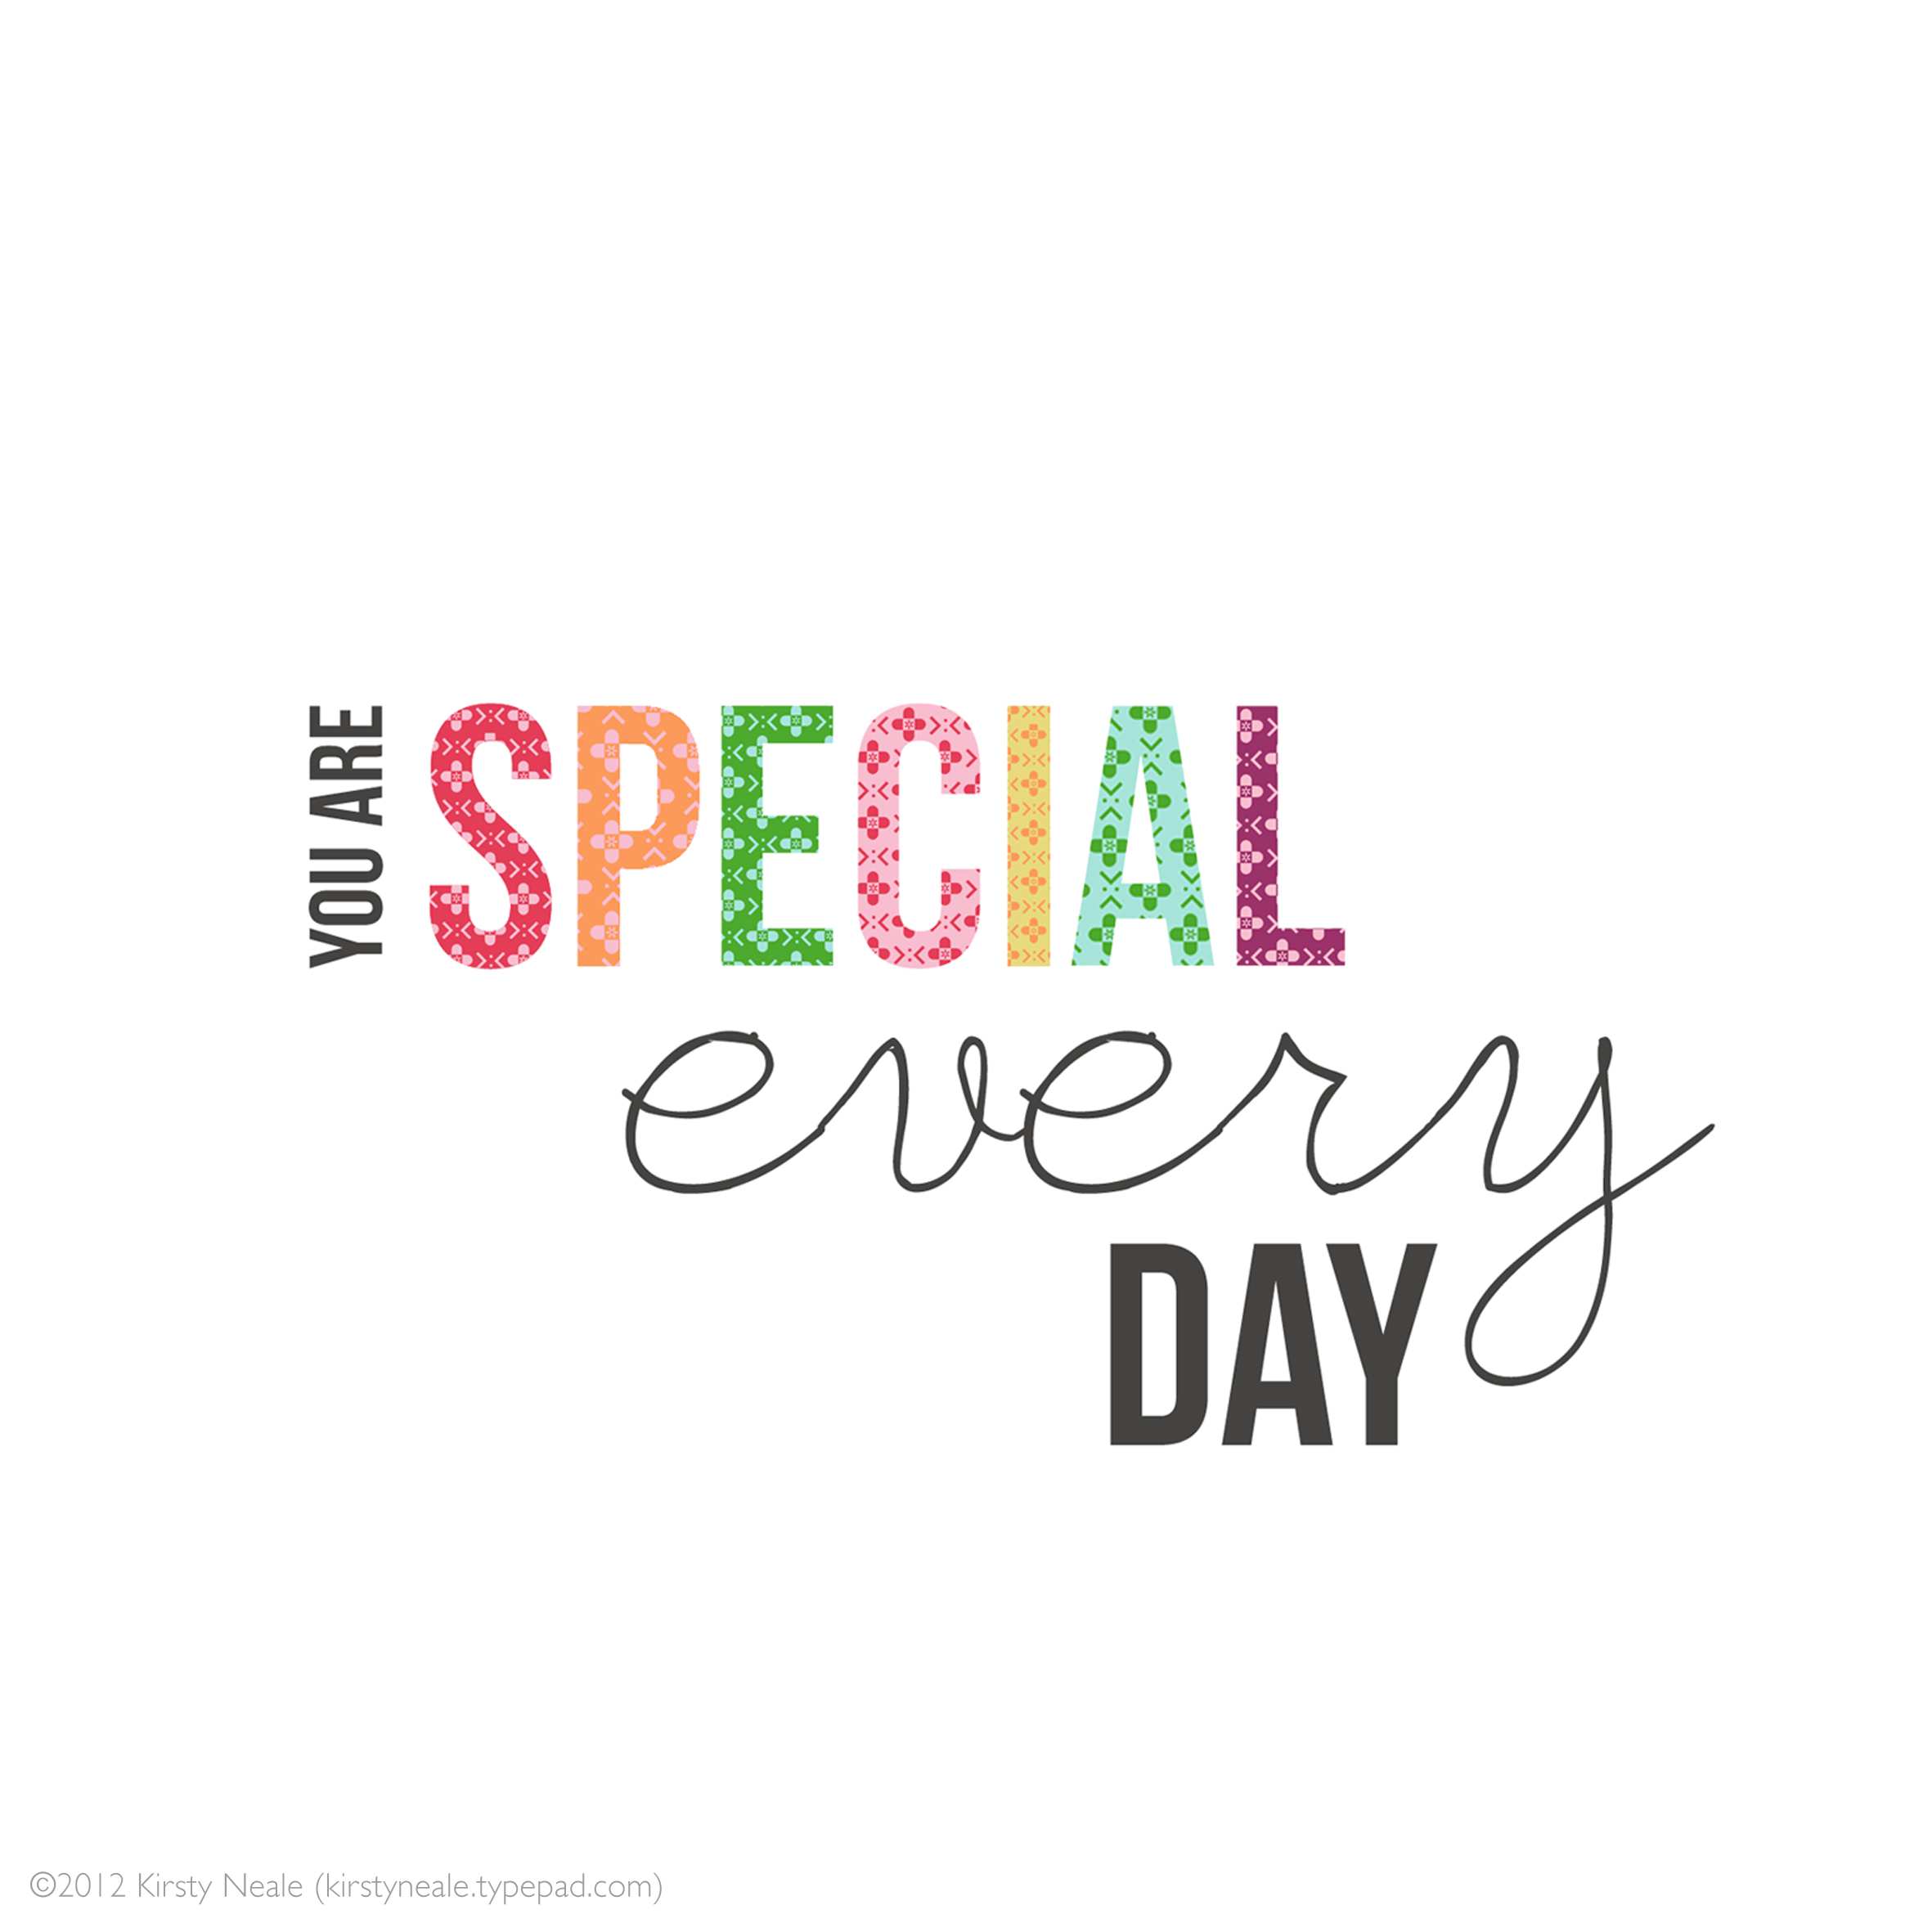 Do you know how special you are? : ThyBlackMan